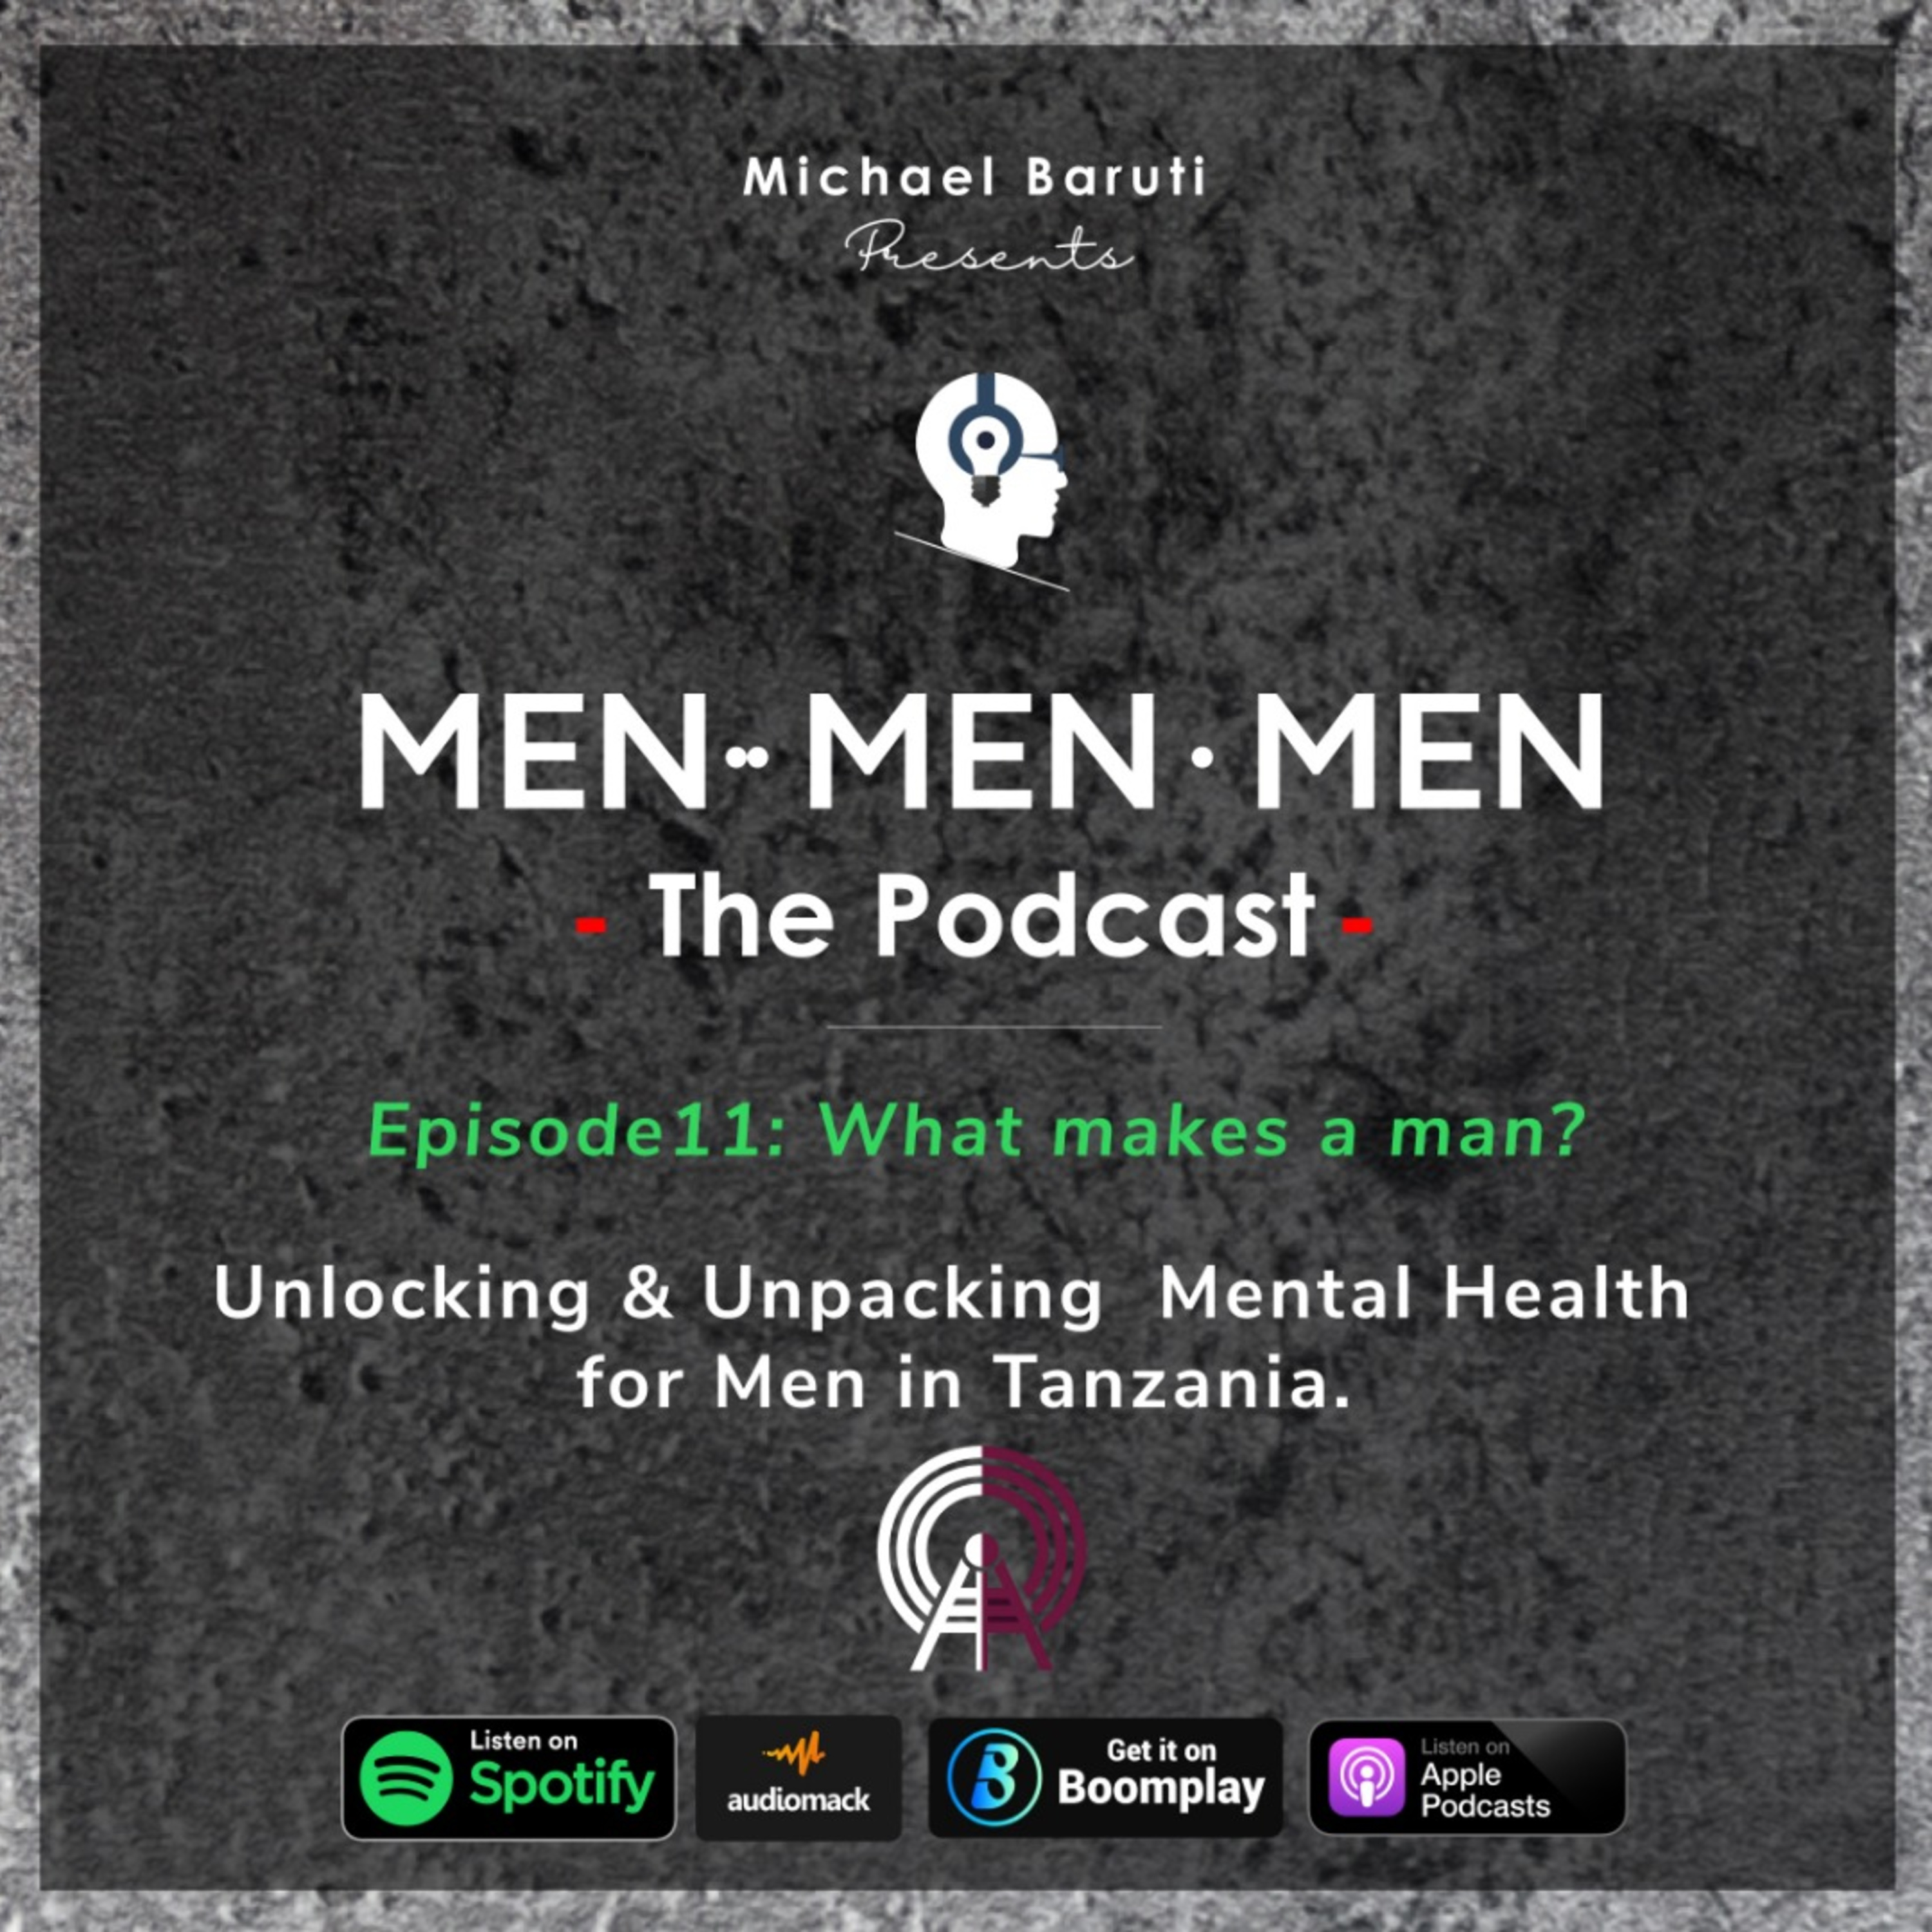 Men The Podcast - Ep 11 - What Makes a Man